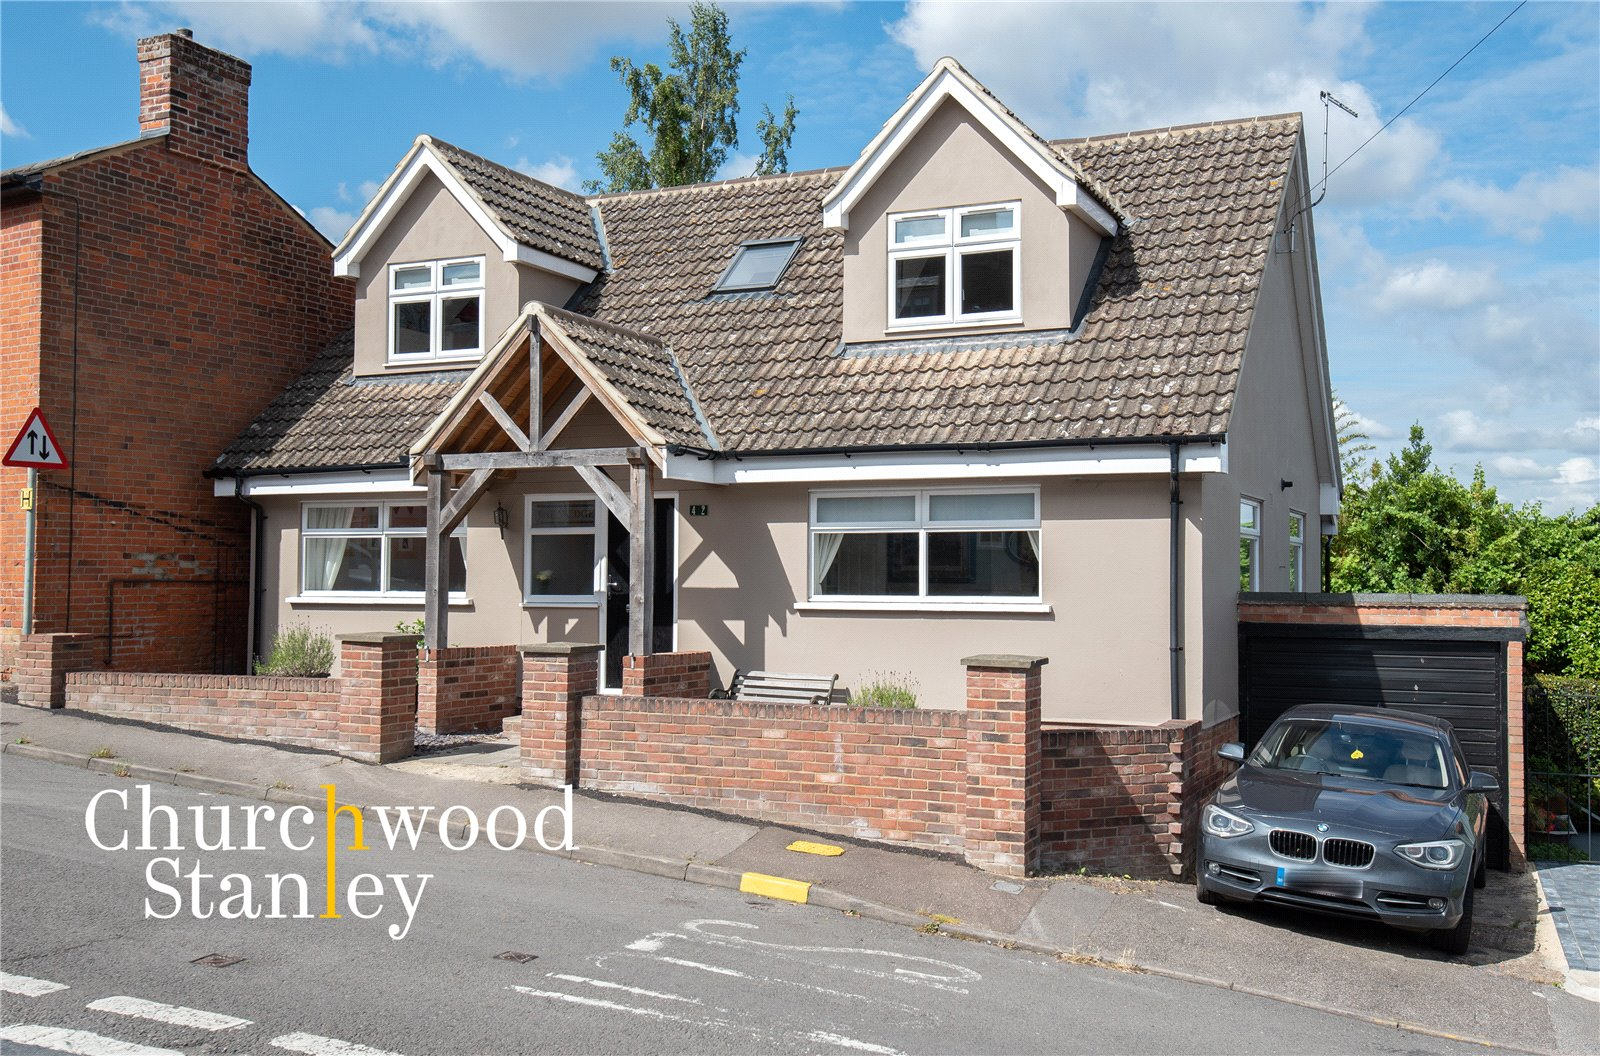 4 bed house for sale in Brook Street, Manningtree, Essex  - Property Image 1